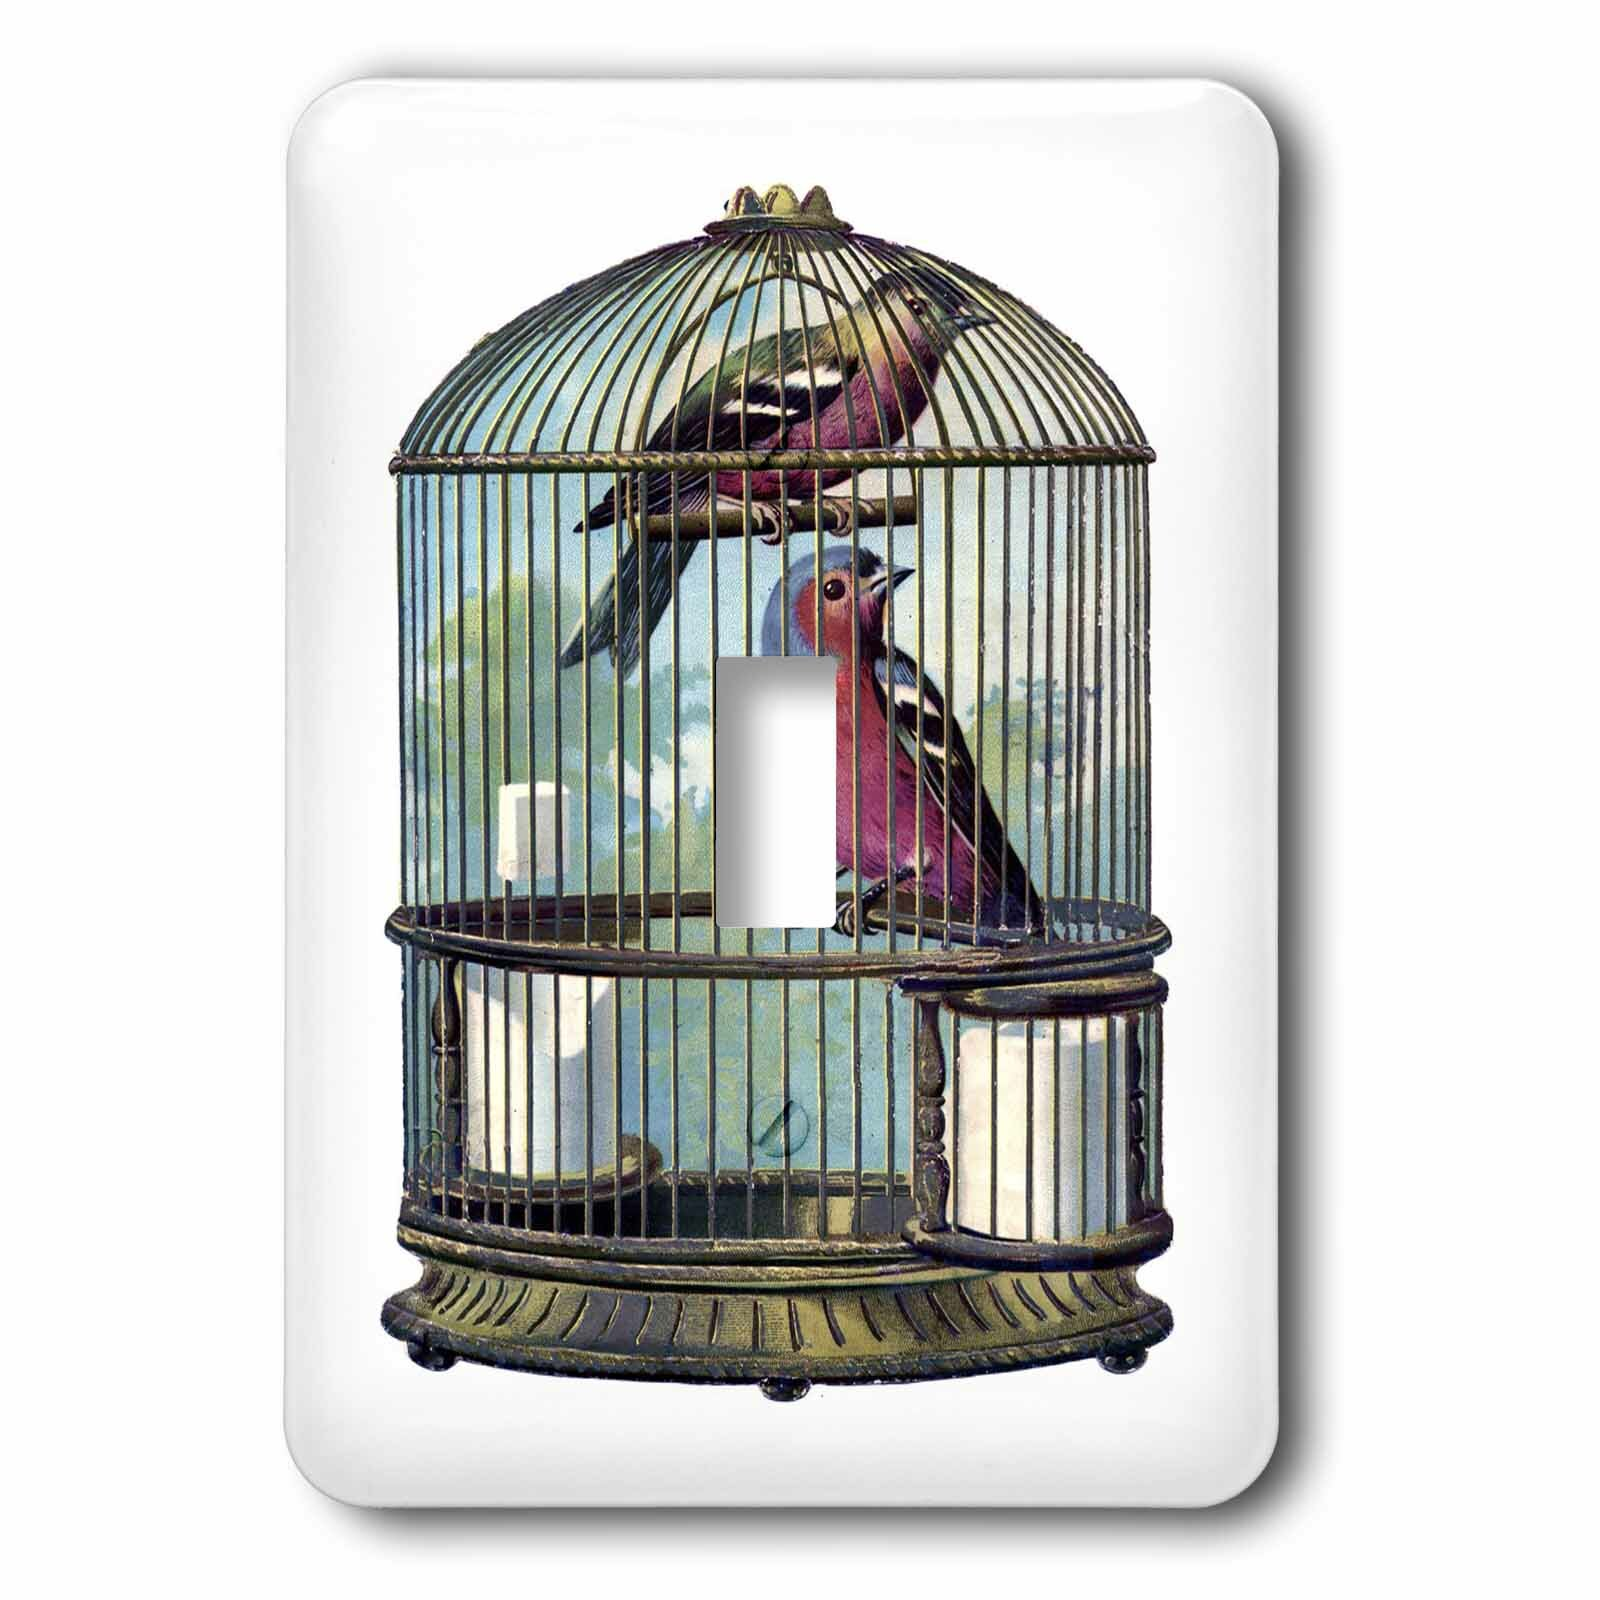 3drose Birds In Victorian Cage 1 Gang Toggle Light Switch Wall Plate Wayfair